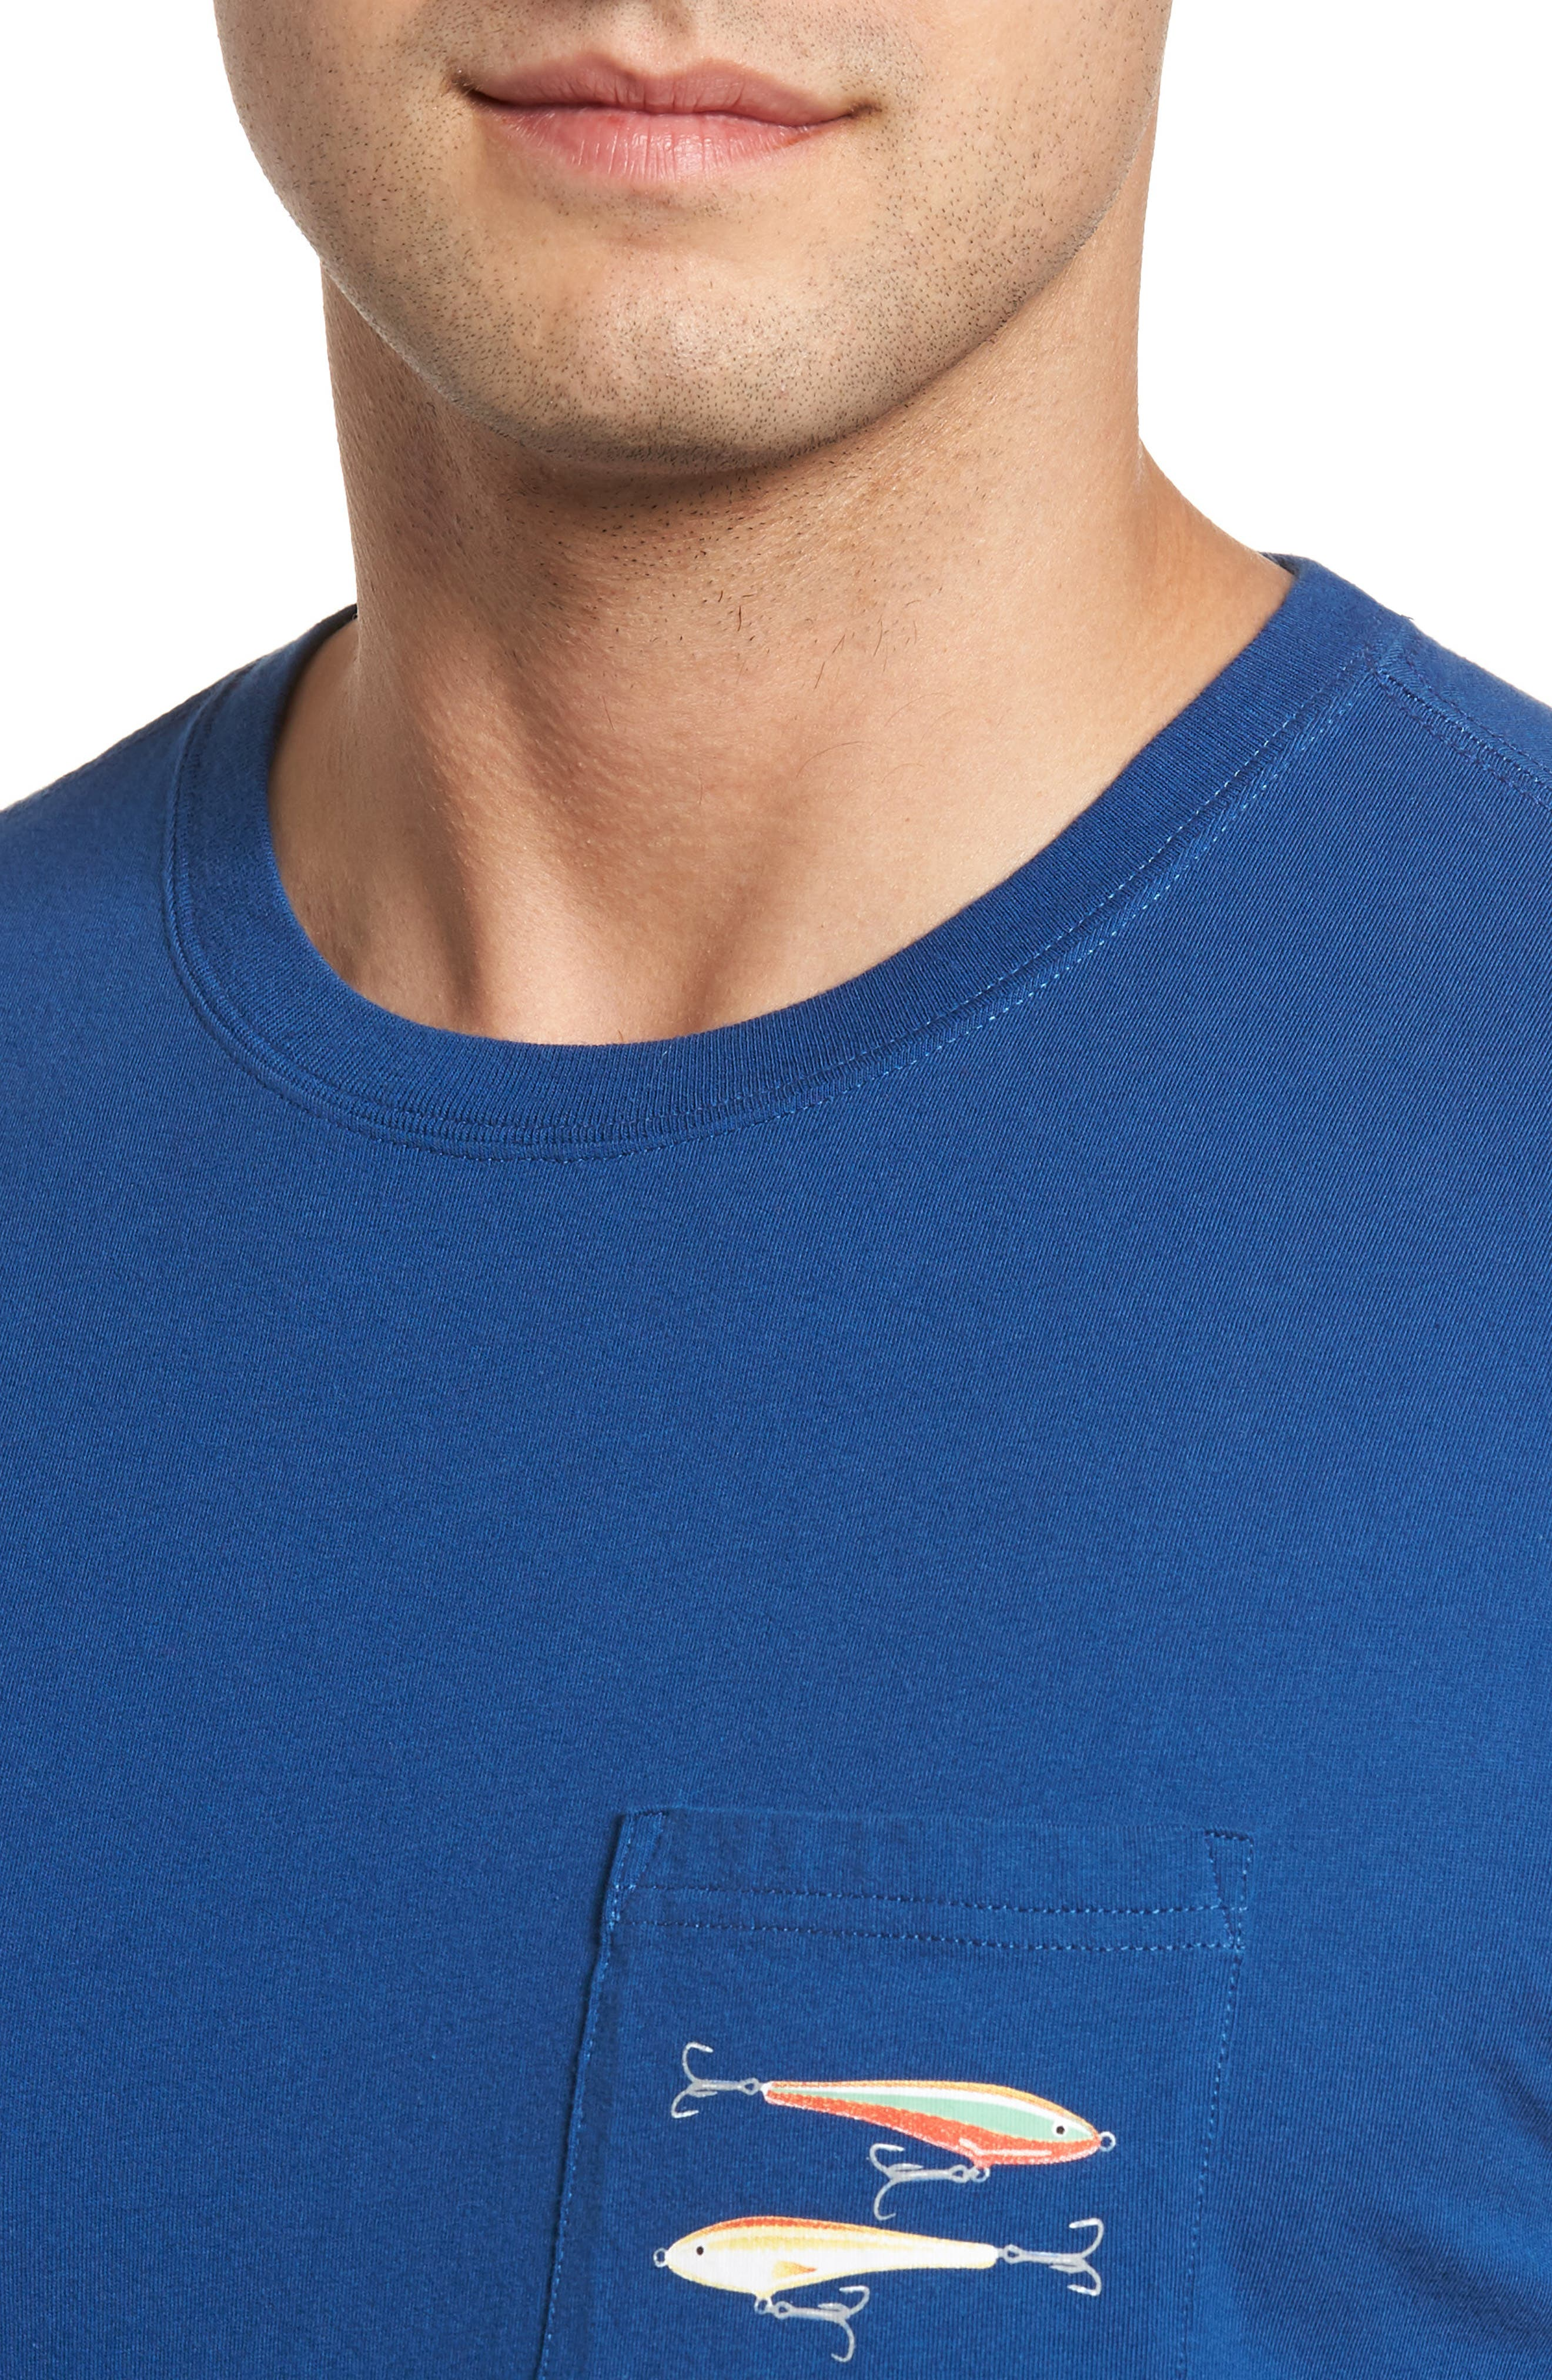 Hanging Out Regular Fit T-Shirt,                             Alternate thumbnail 4, color,                             440